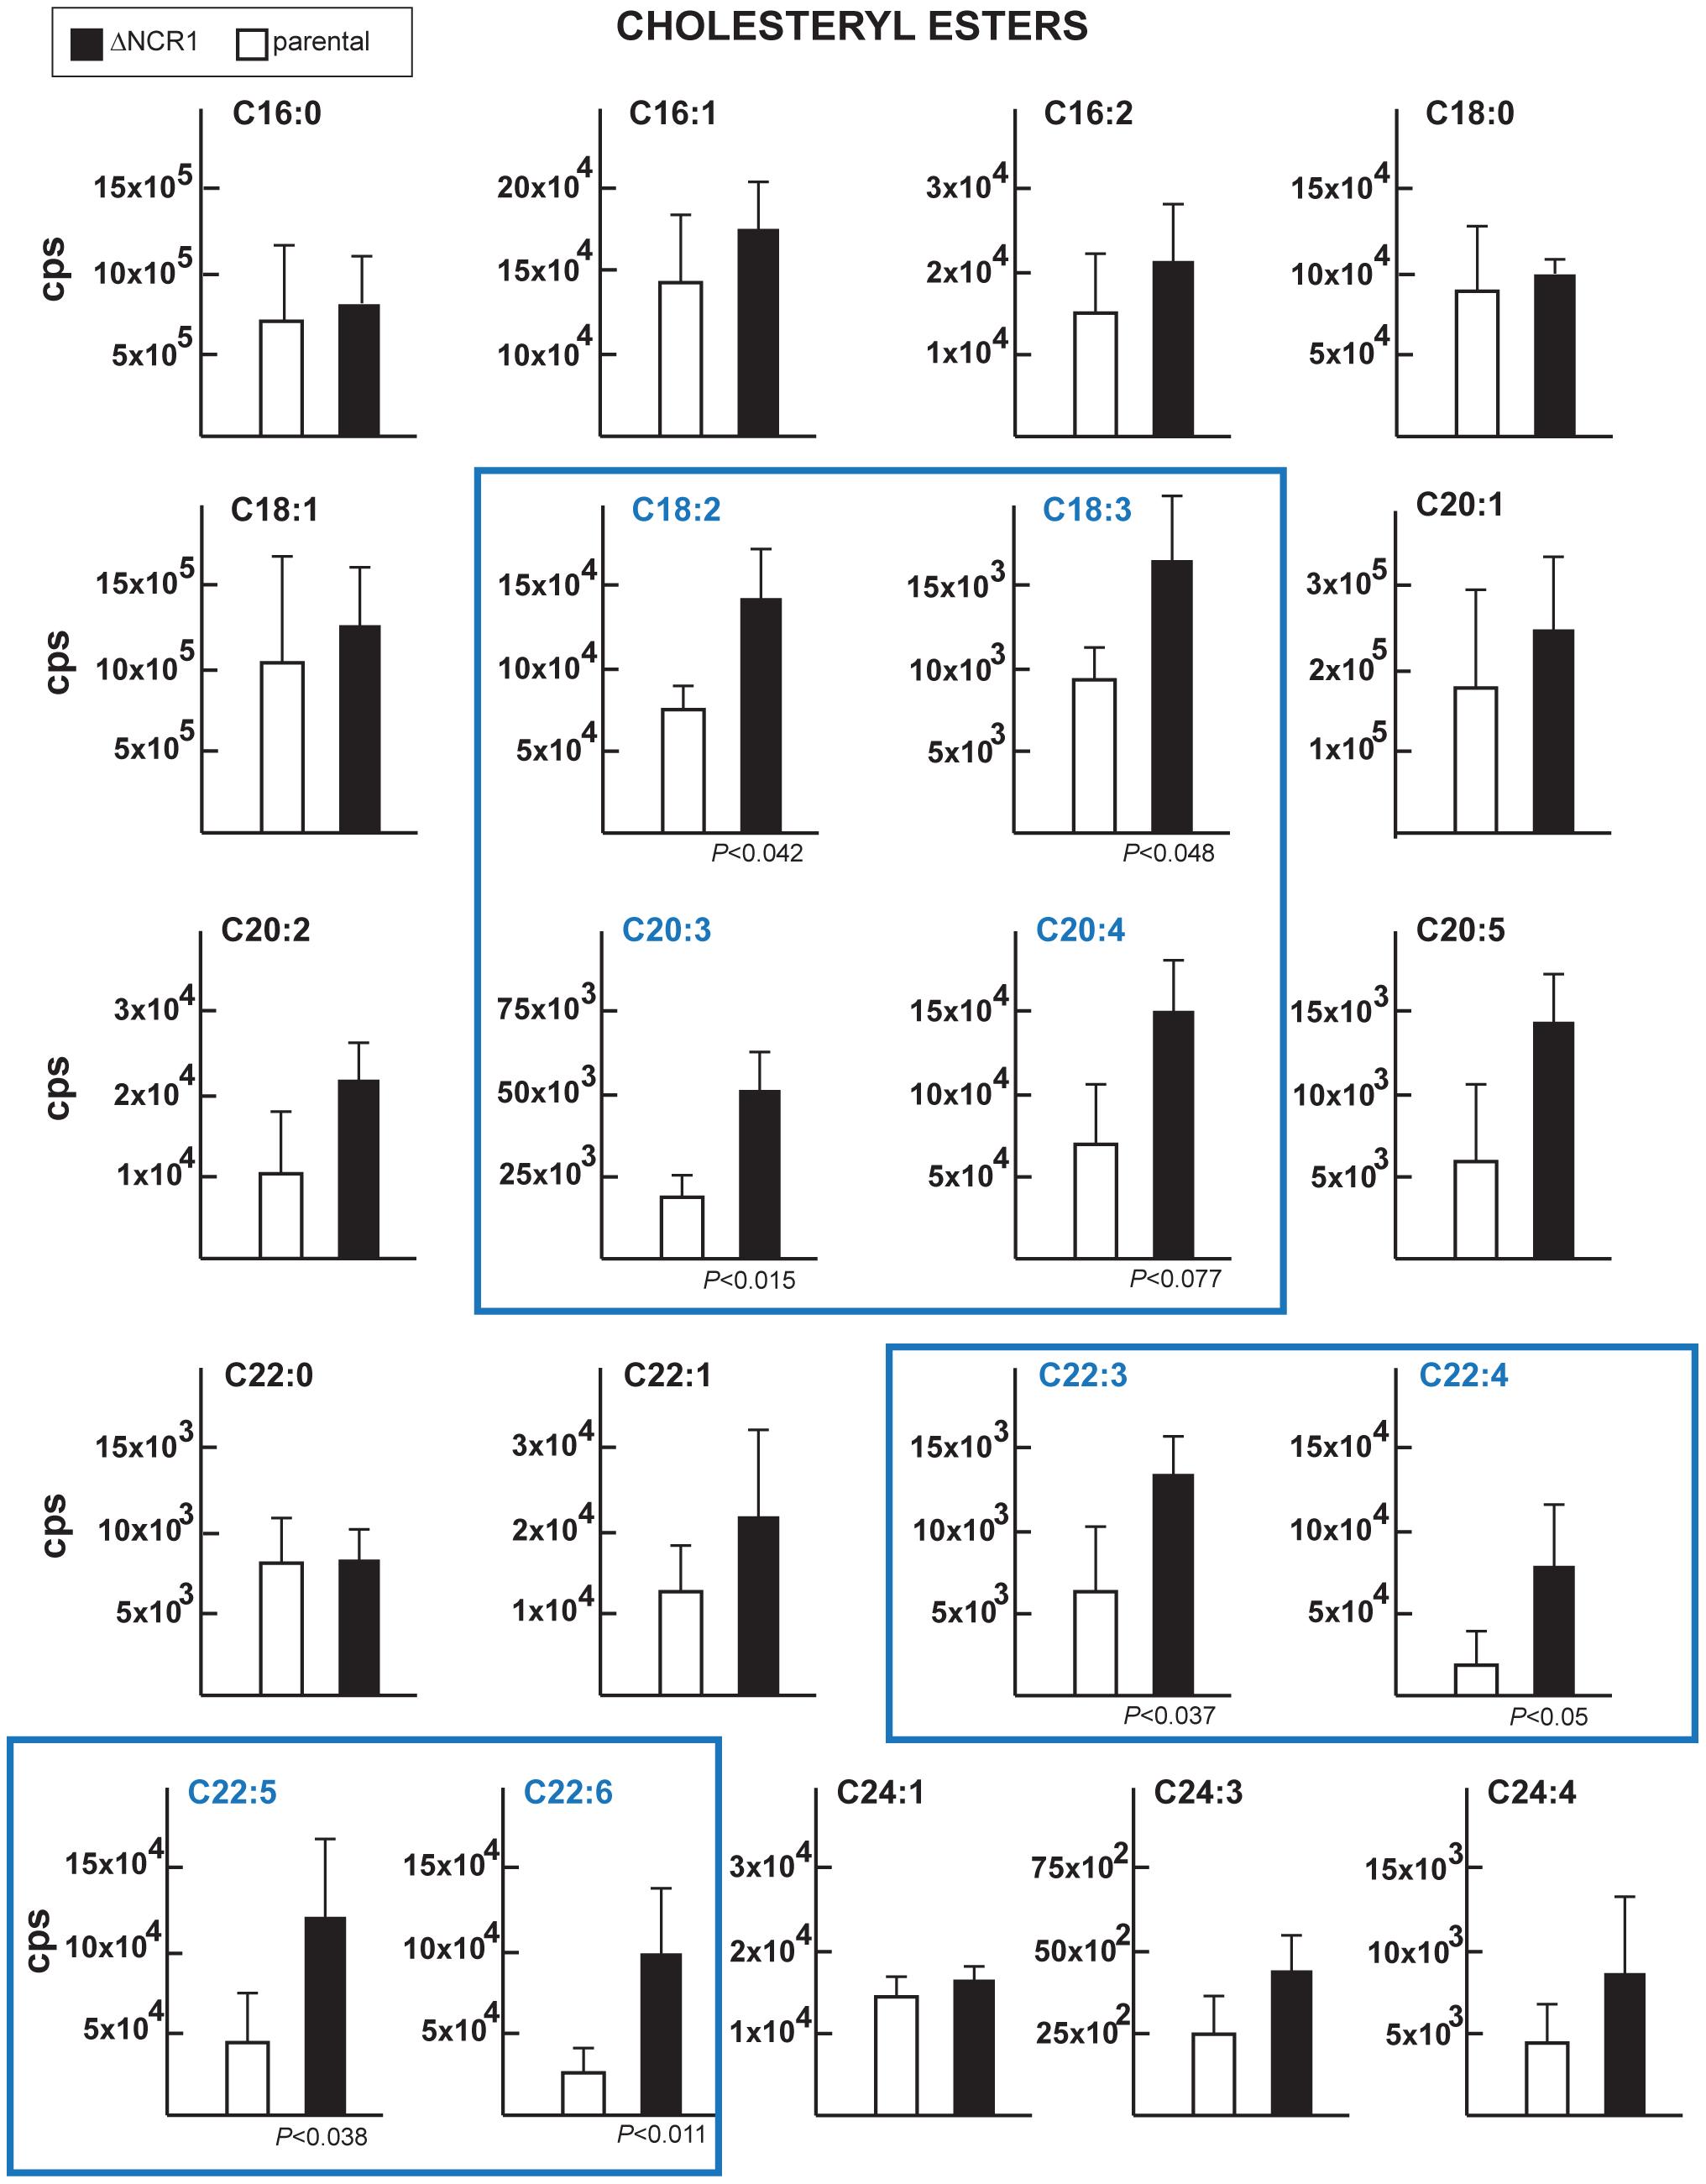 Content of cholesteryl esters in TgNCR1-deficient parasites.